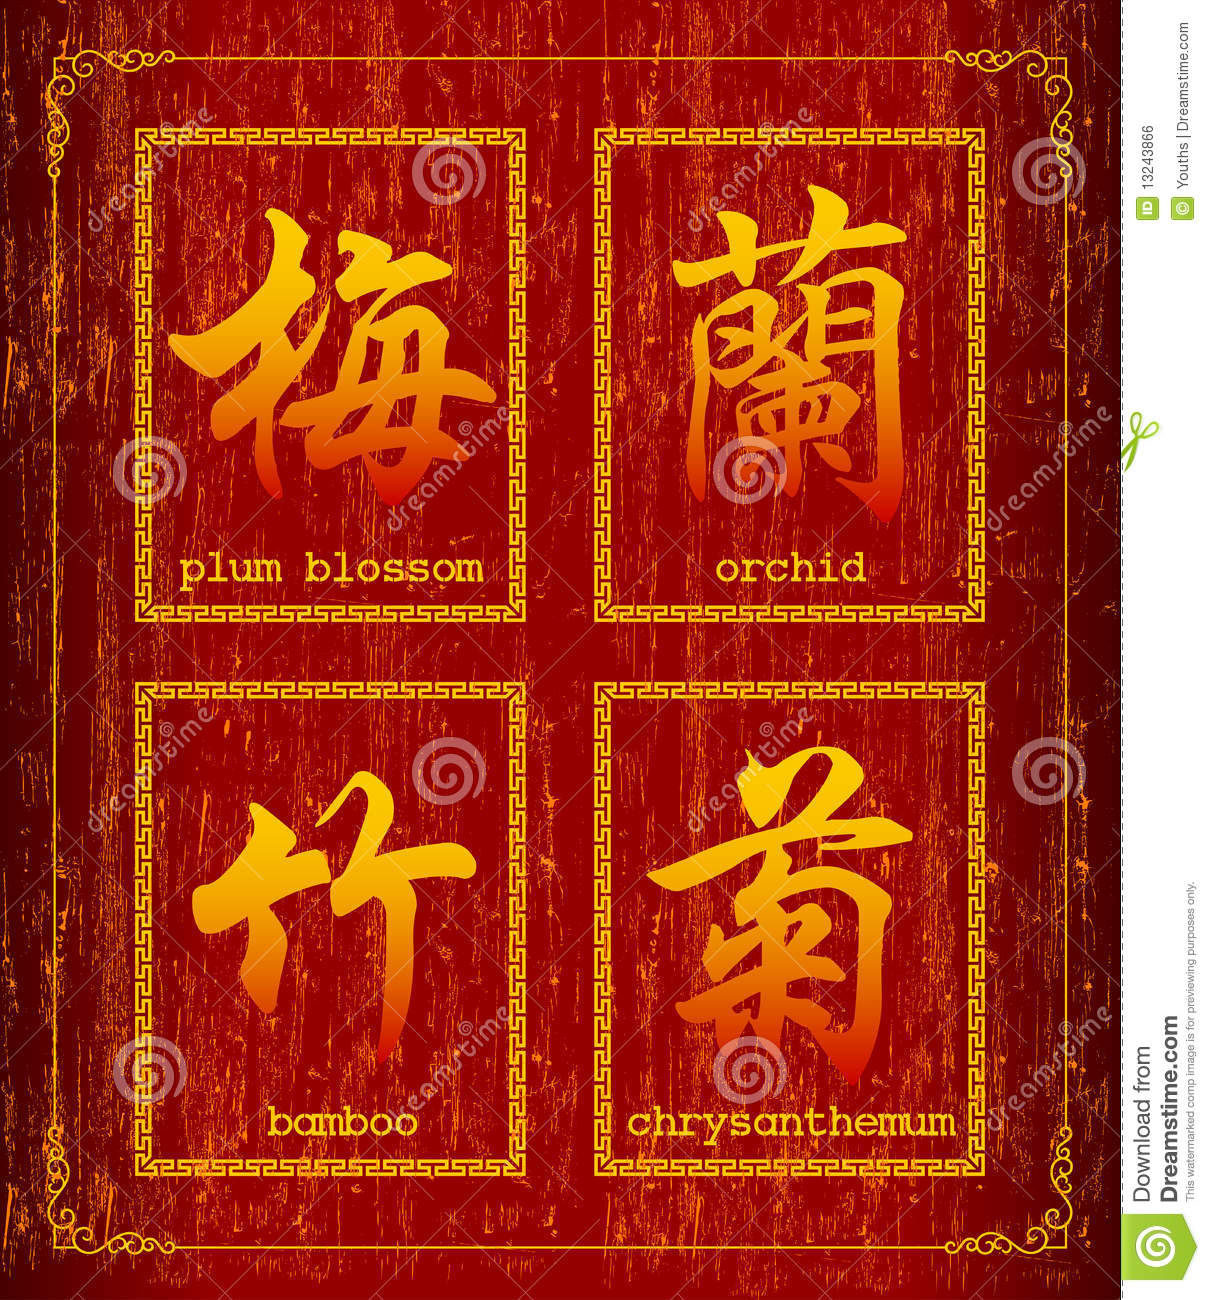 Chinese character symbol about Plants